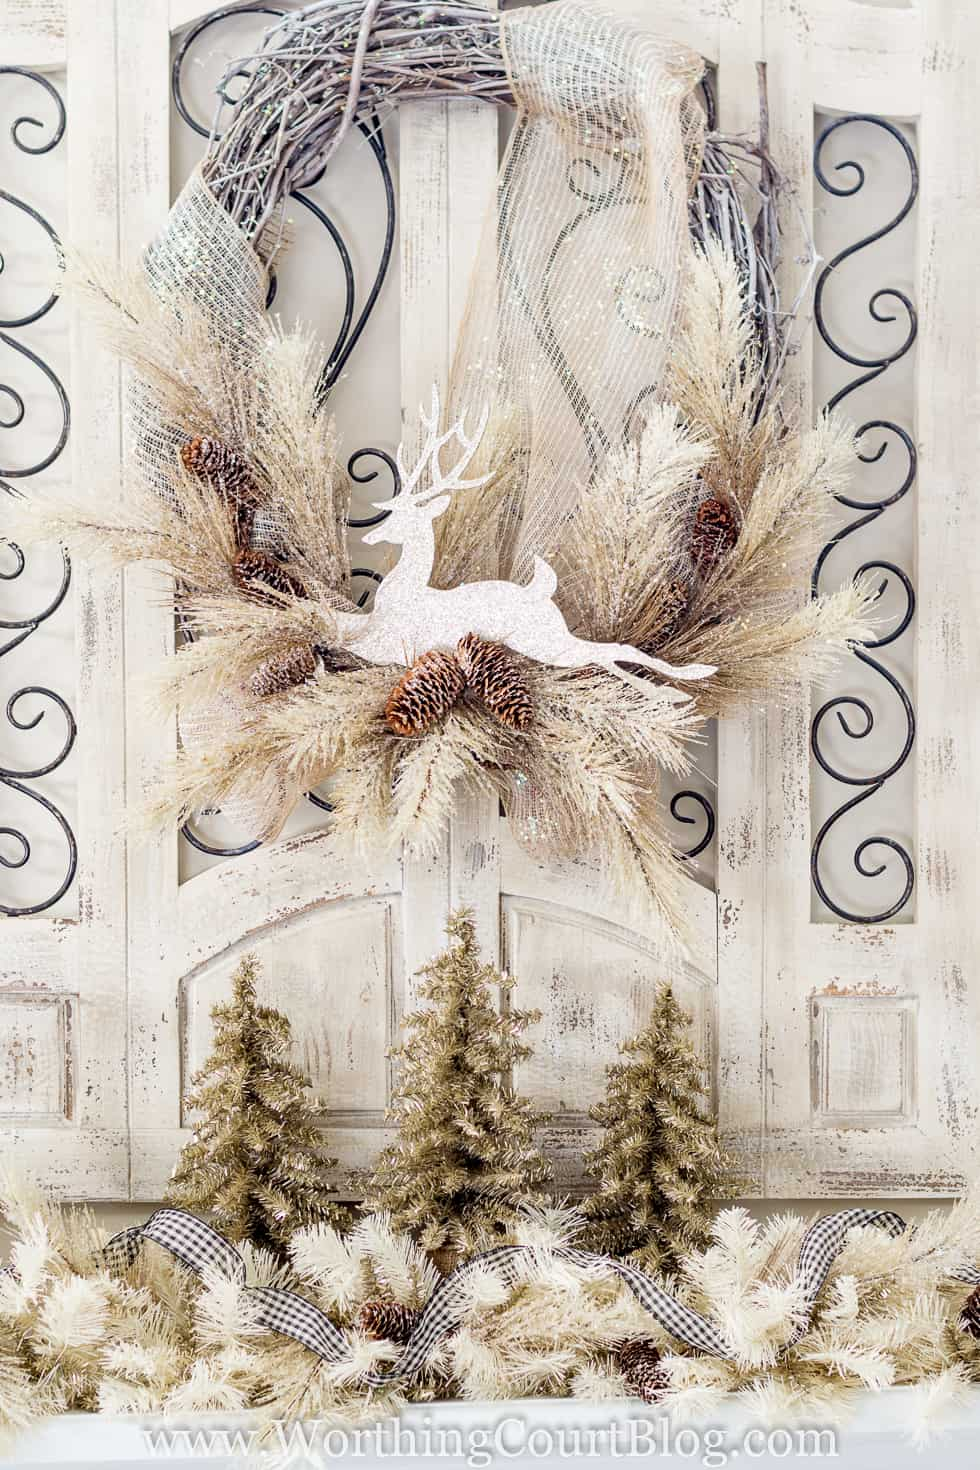 A white deer is on a holiday wreath.